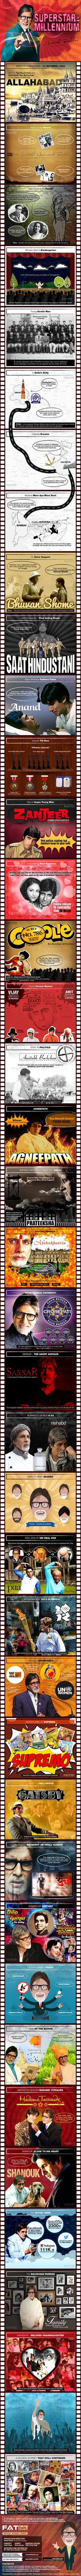 complete-life-story-of-amitabh-bachchan-in-one-graphic